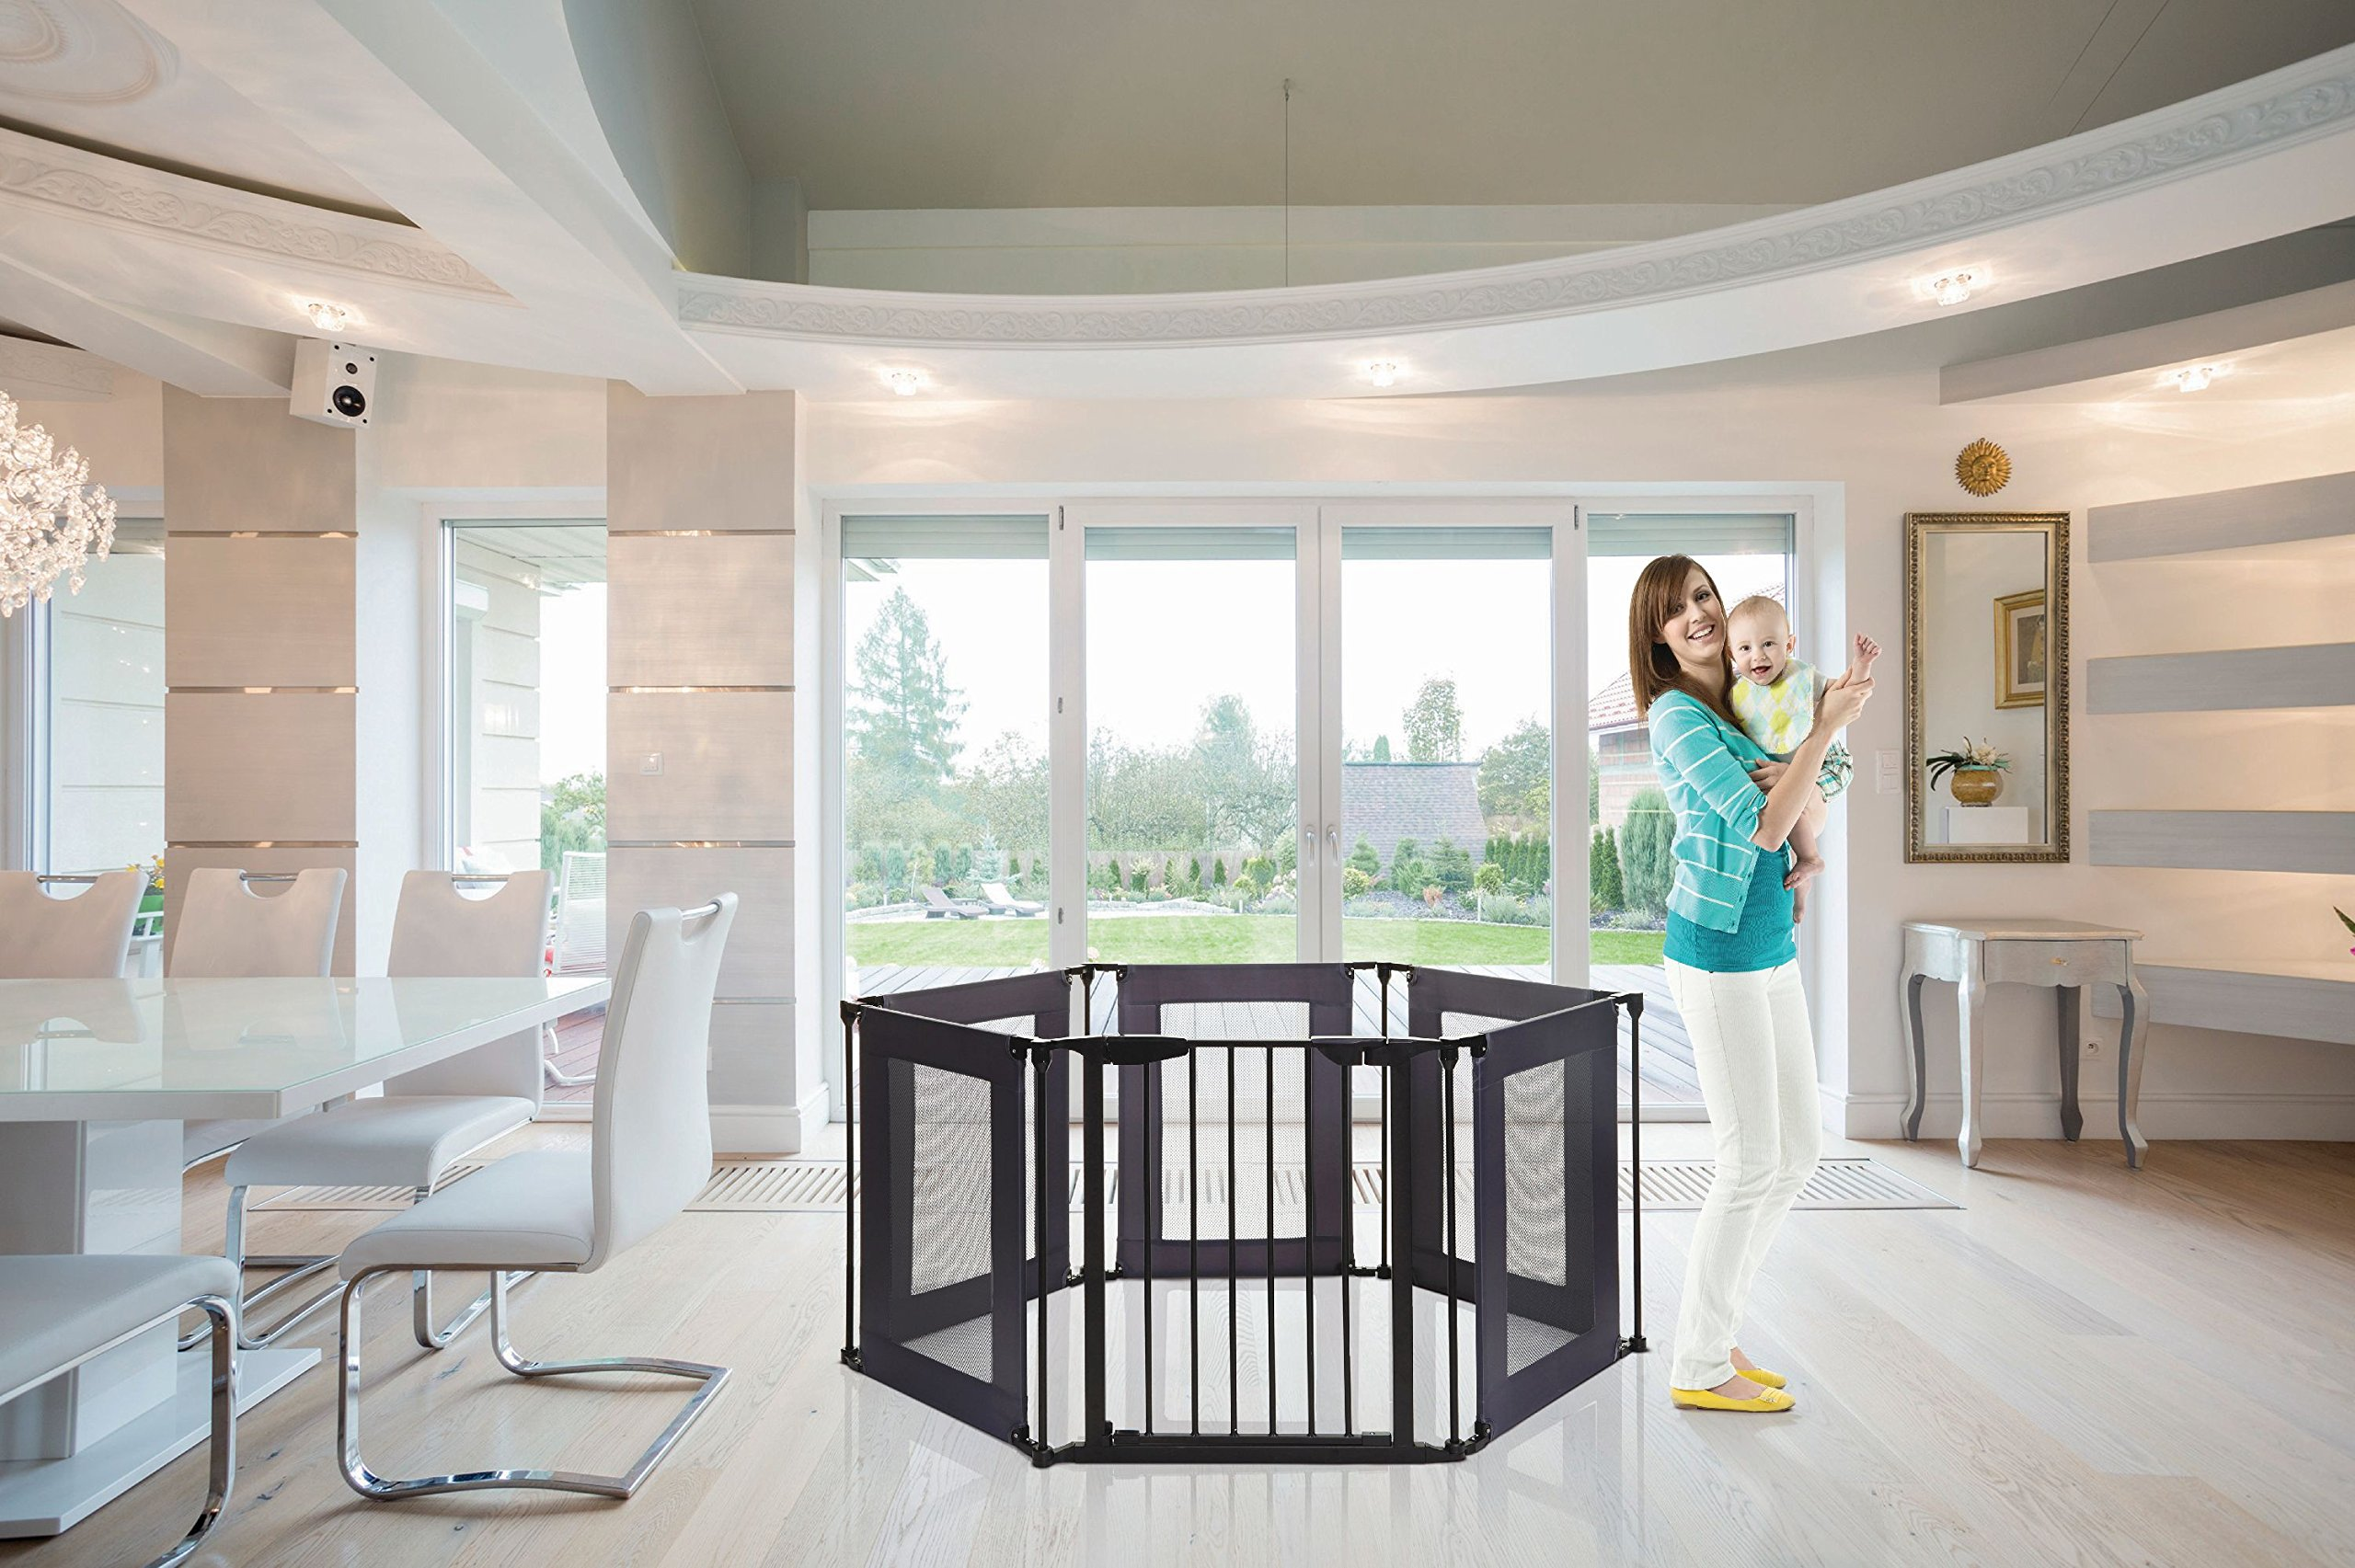 Dreambaby Brooklyn 3-in-1 Converta Dreambaby 6 modular panels including covenient walk-through gate Arrange panels to your specific layout Can be used as either a play-pen or extra-wide barrier gate 6